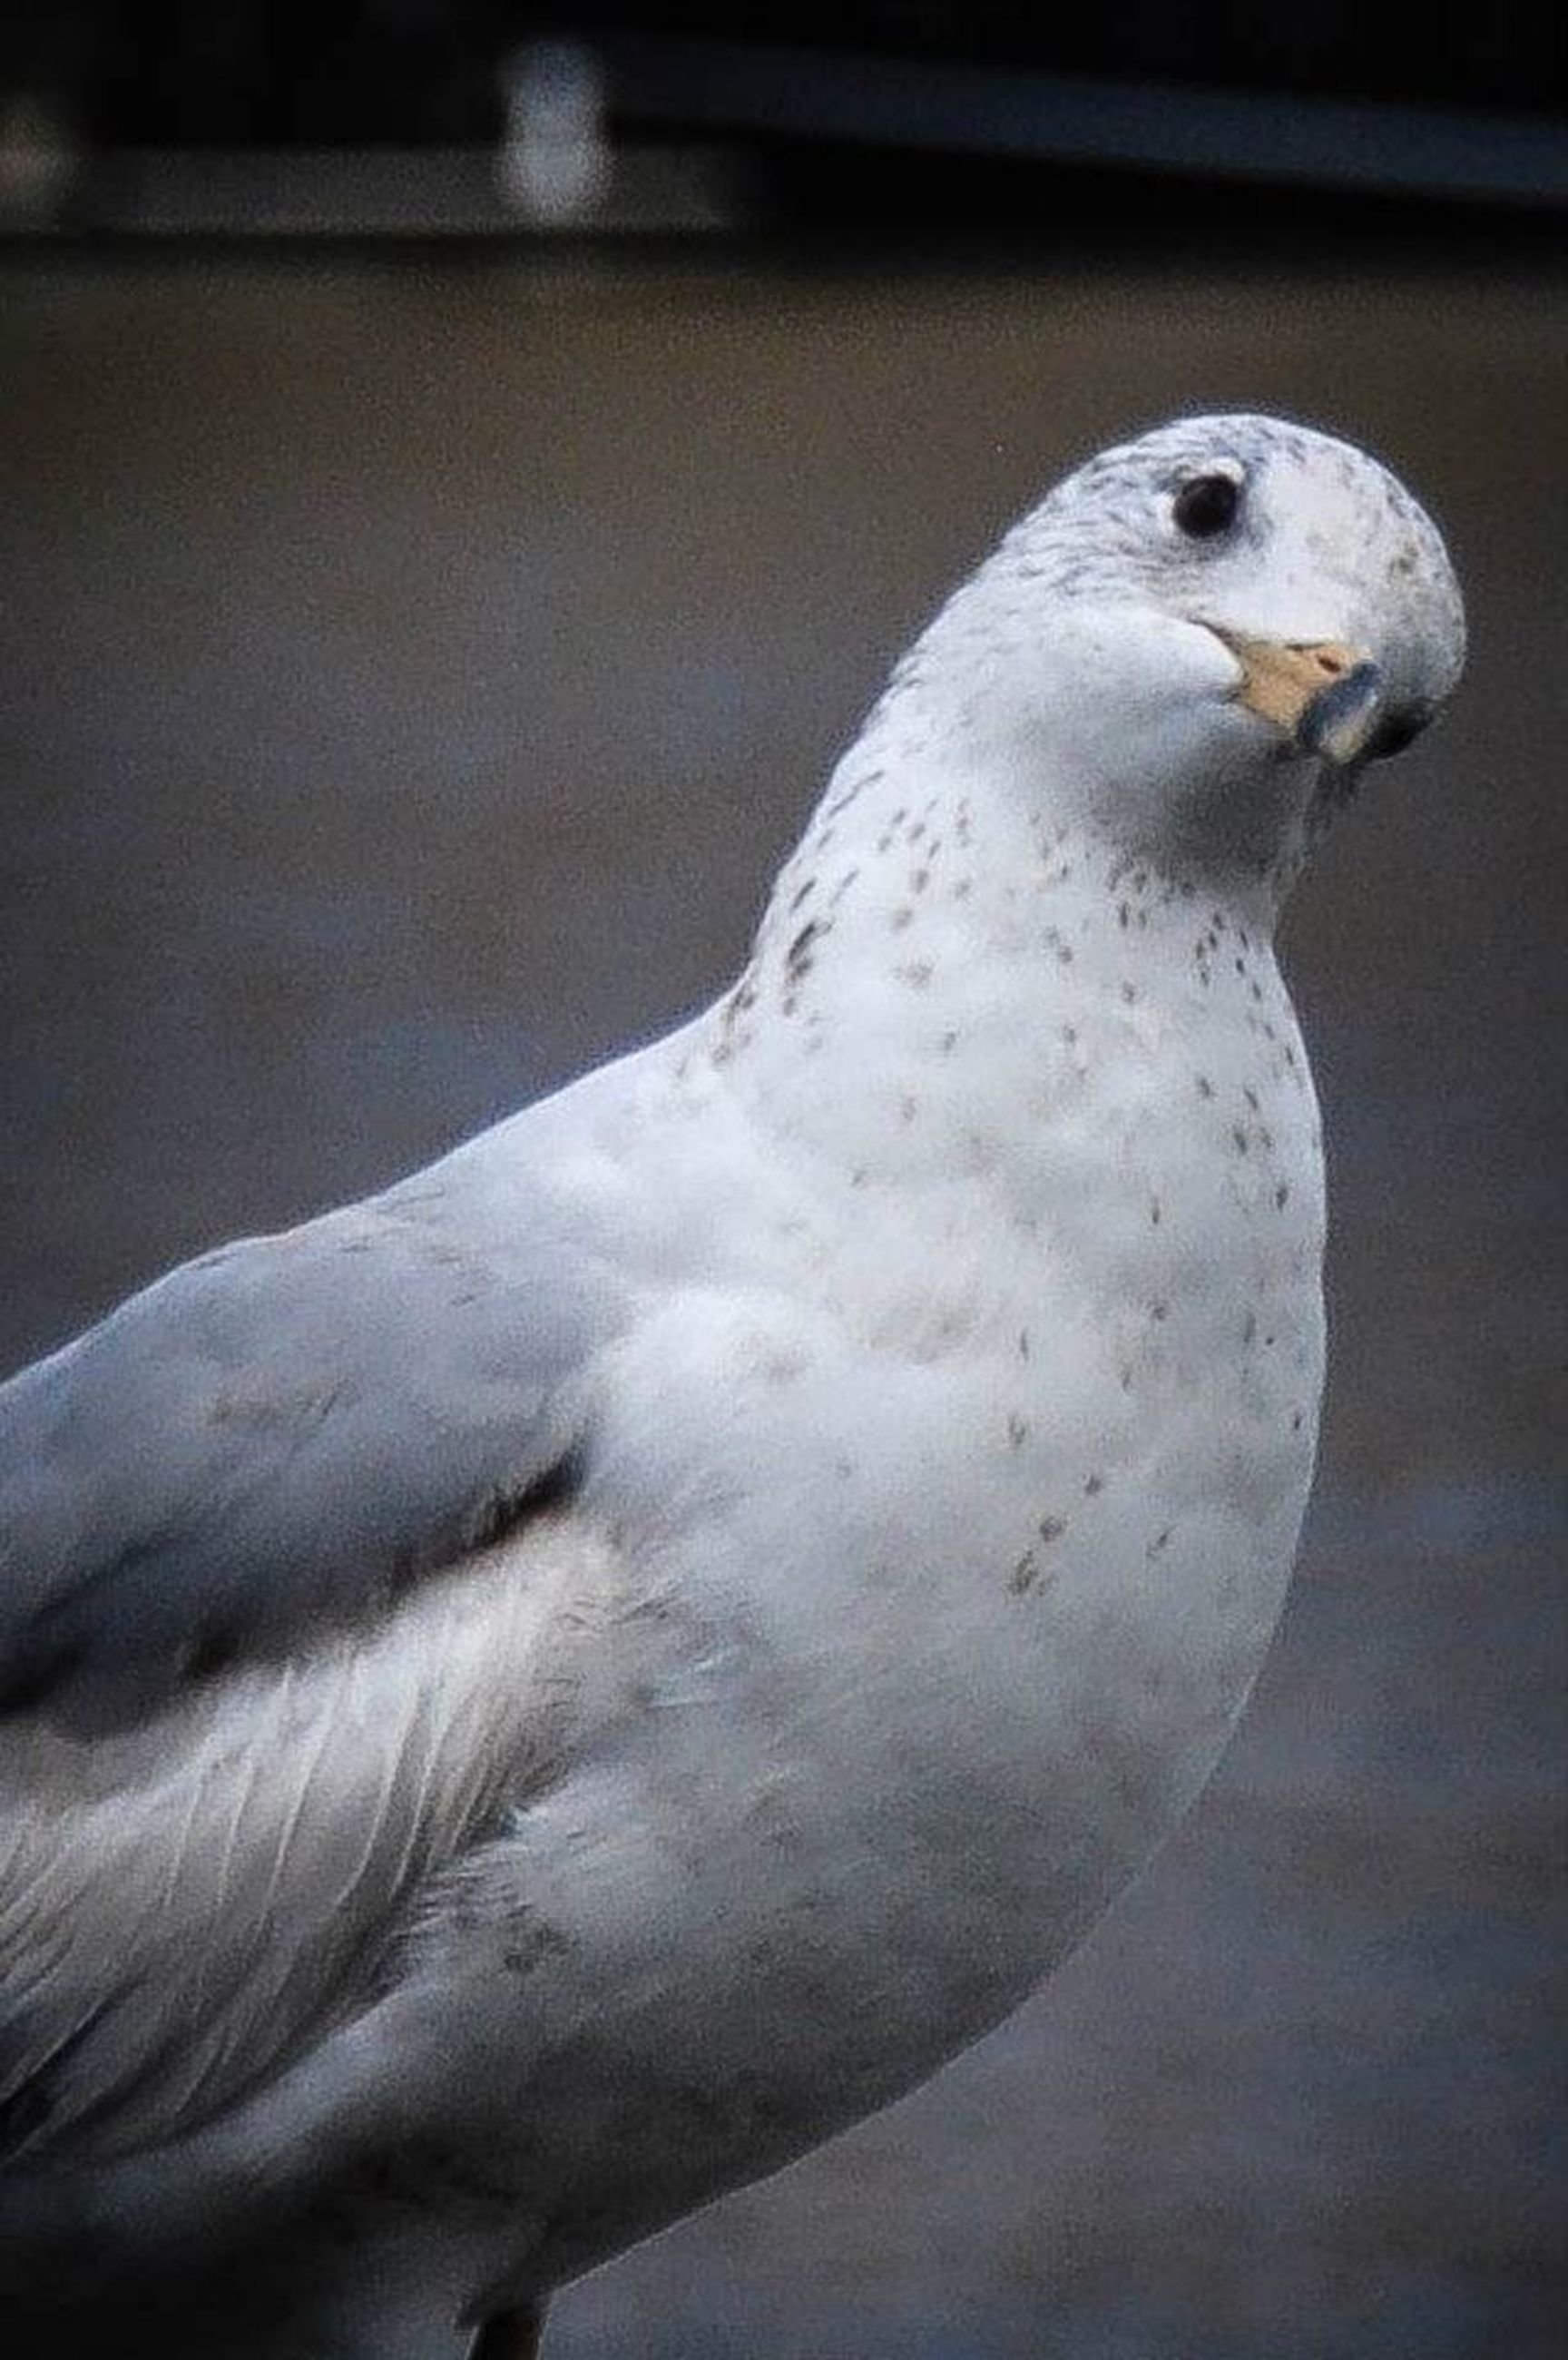 bird, animal themes, one animal, animals in the wild, wildlife, beak, seagull, close-up, white color, focus on foreground, perching, nature, side view, animal head, full length, outdoors, day, pigeon, no people, zoology